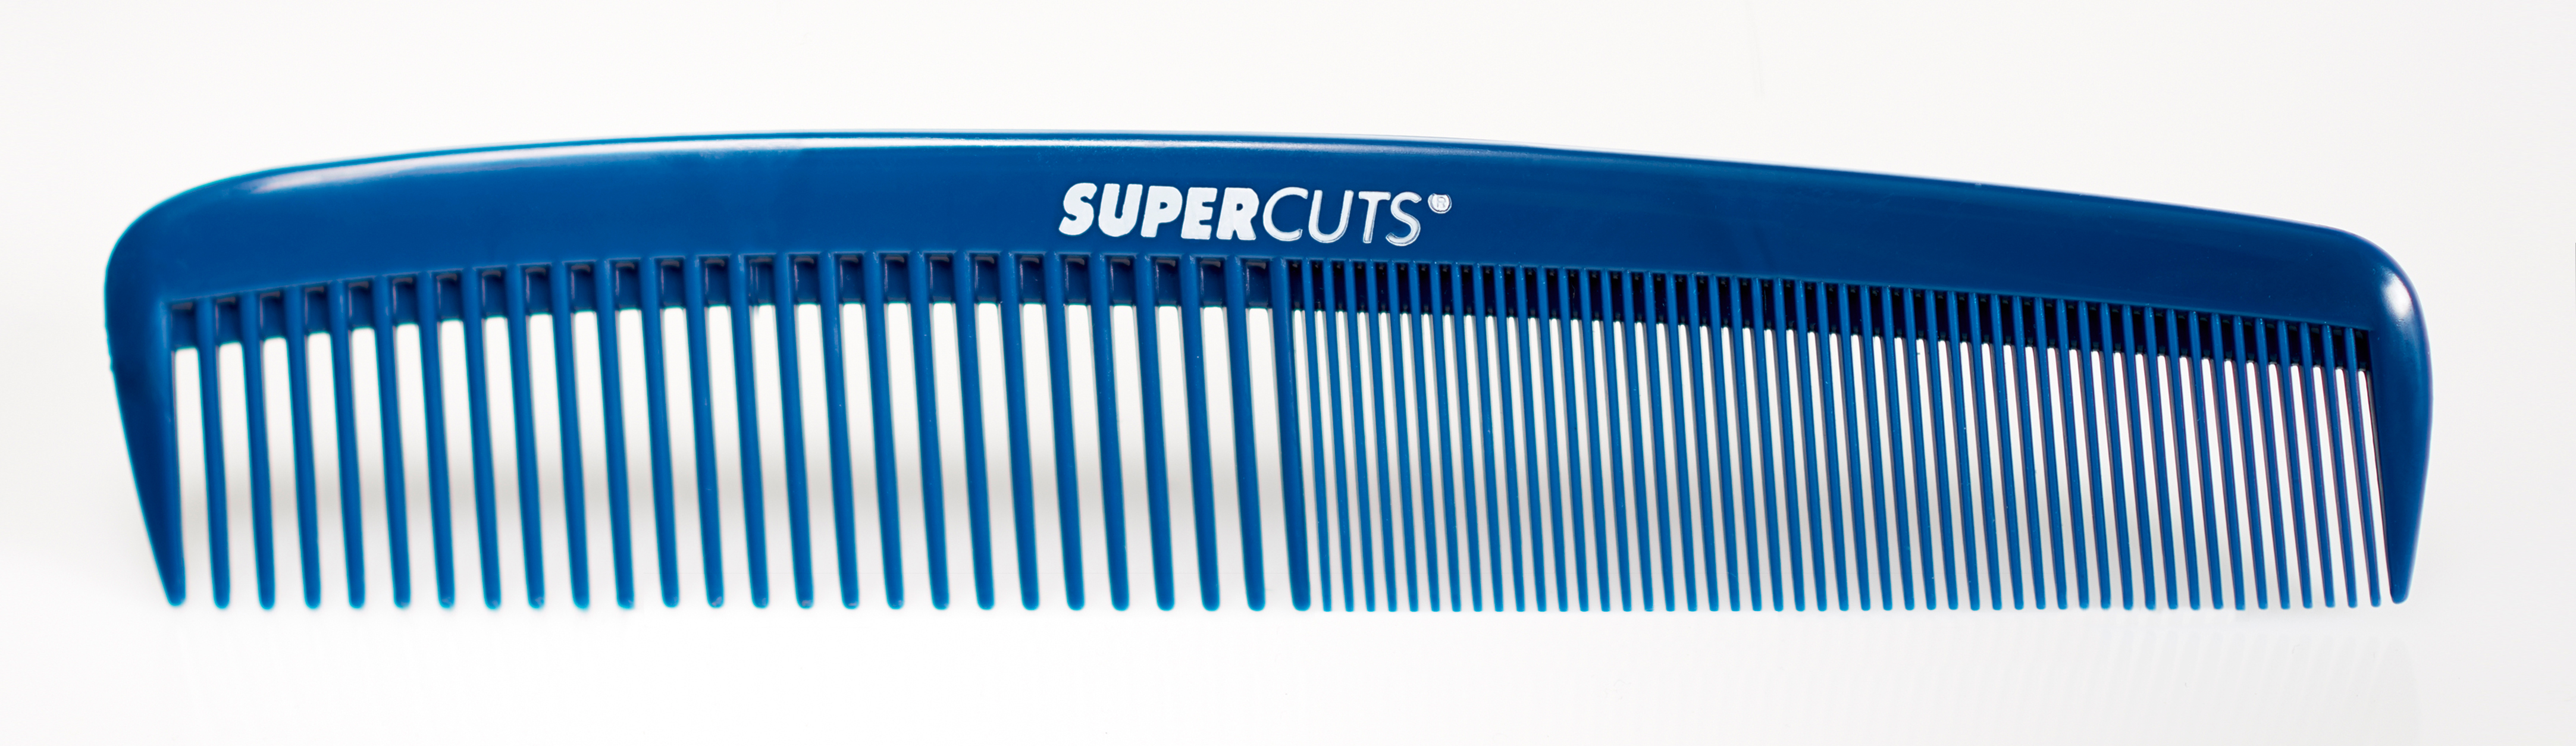 AG Supercuts. At AG Supercuts we are highly experienced and trained professionals with over twenty years experience within the industry both here and abroad.